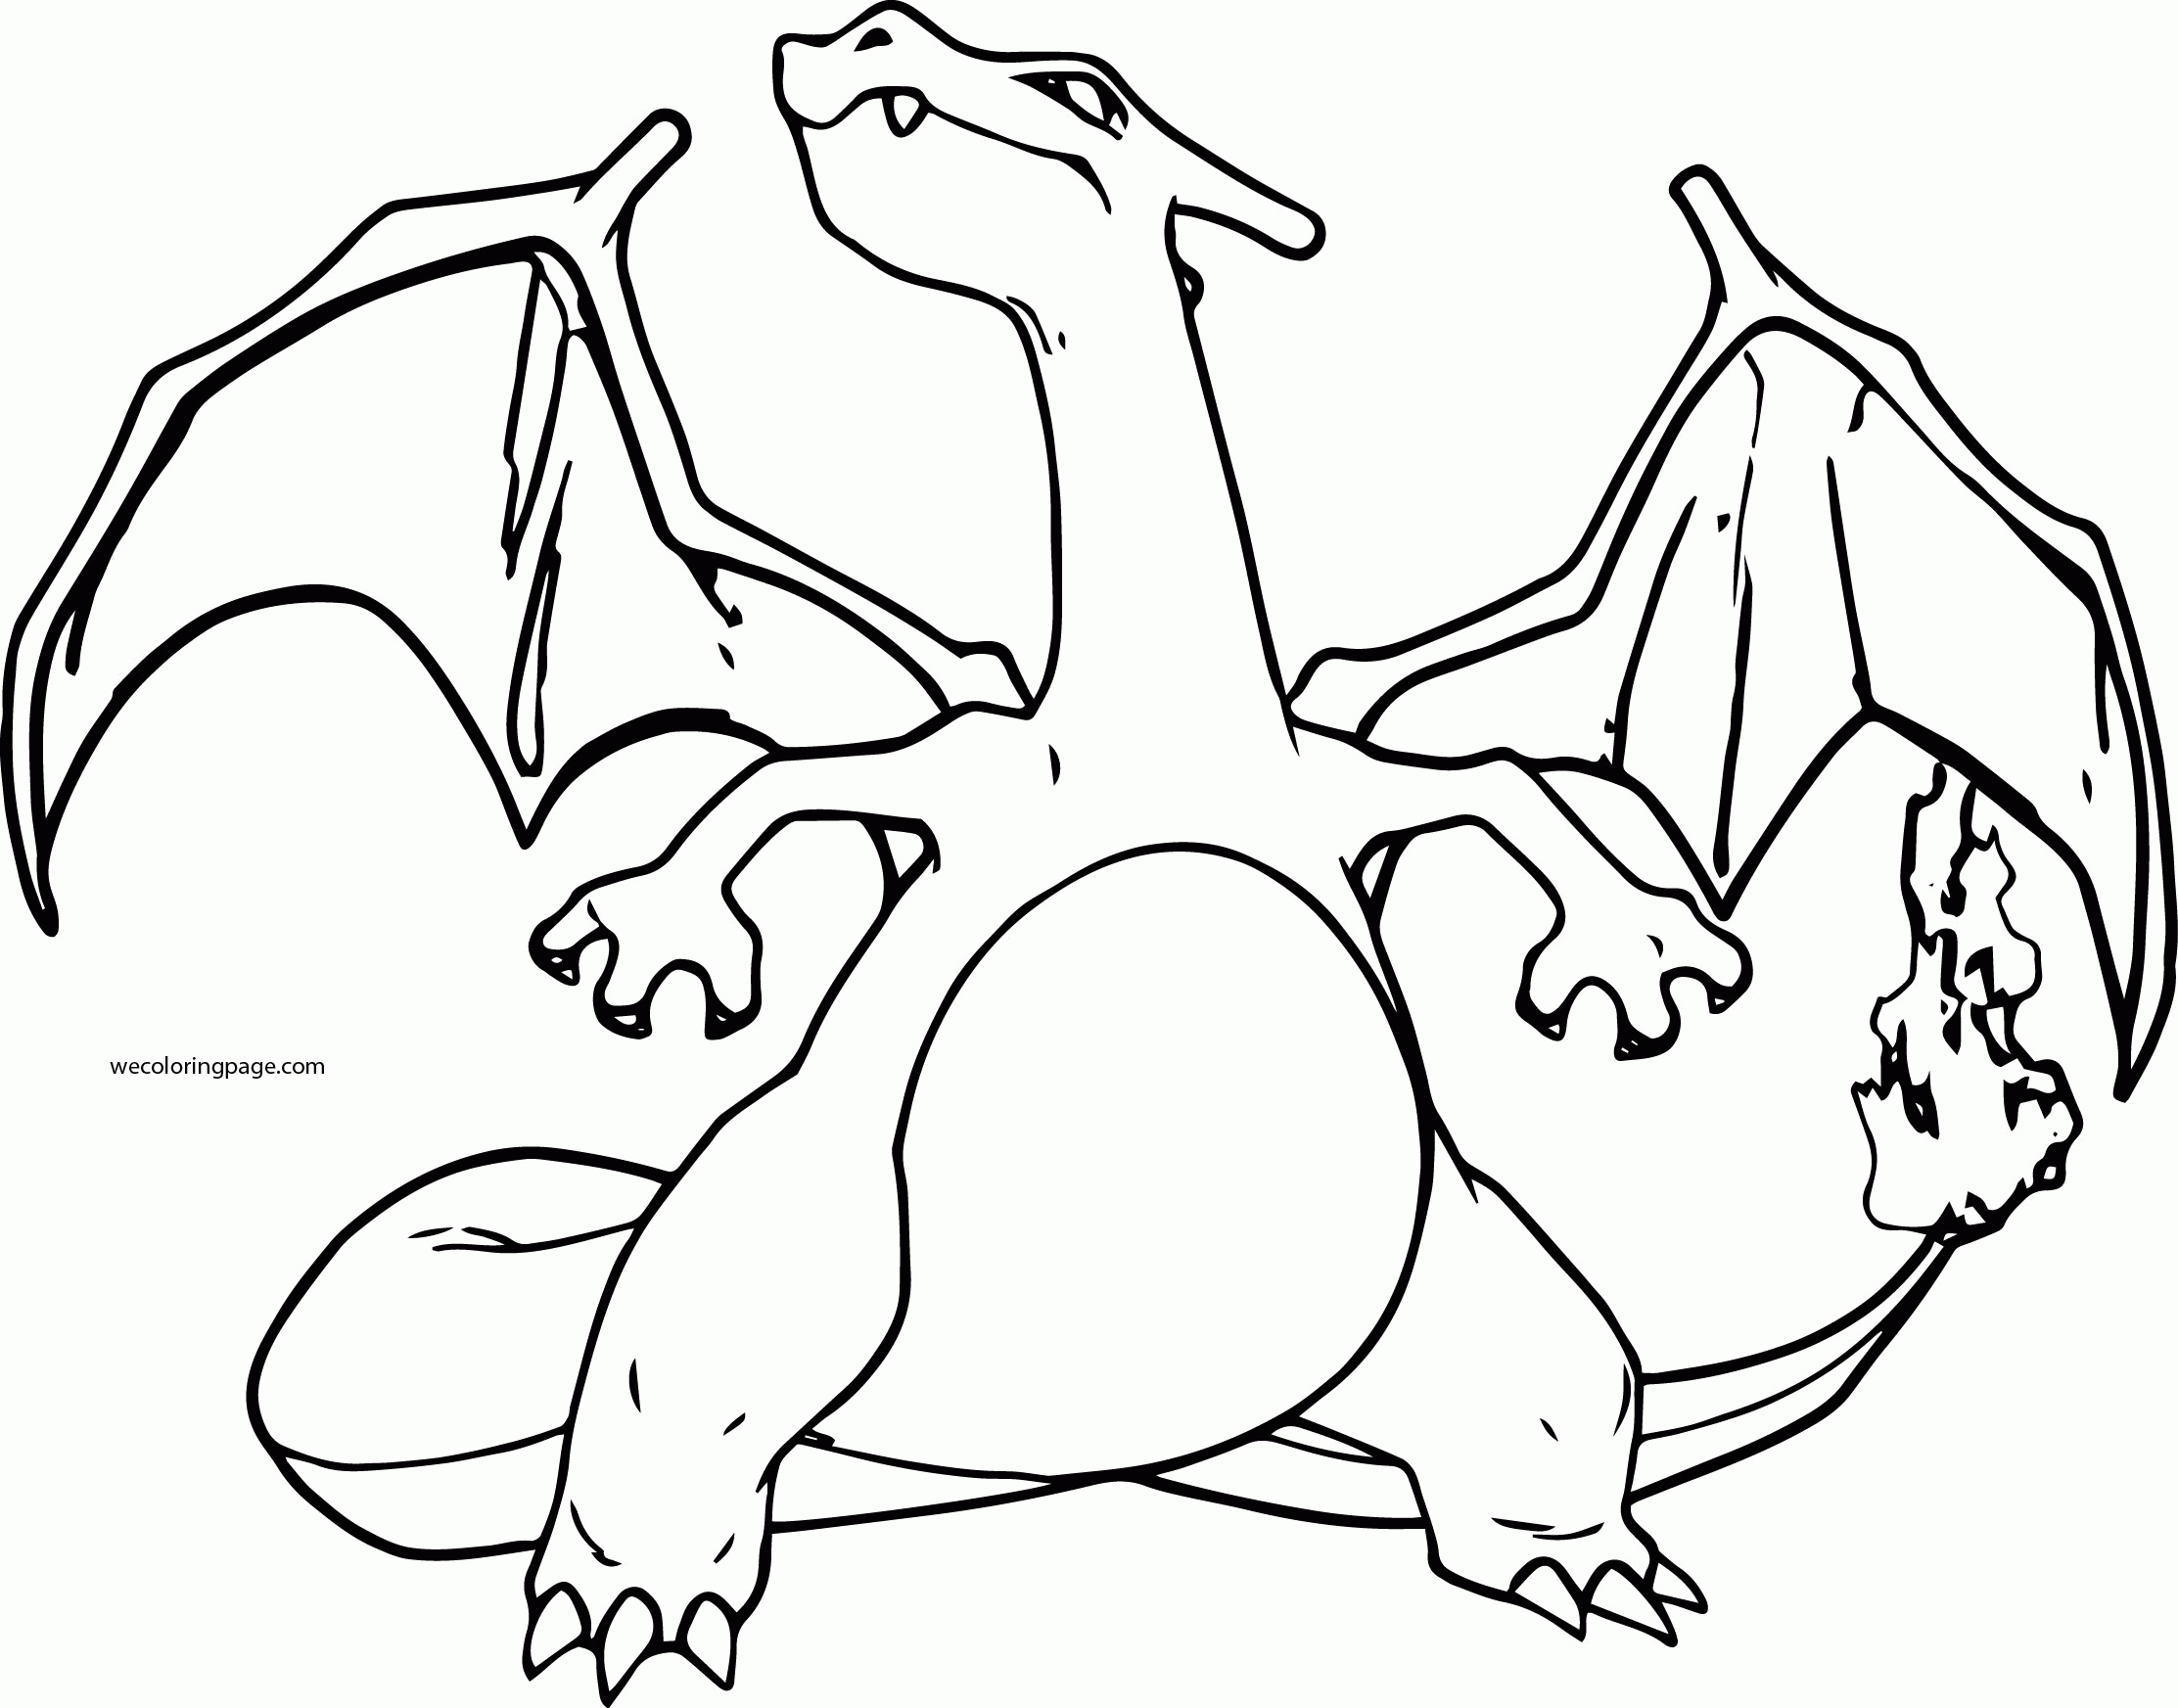 mega charizard coloring page - pokemon coloring pages mega charizard